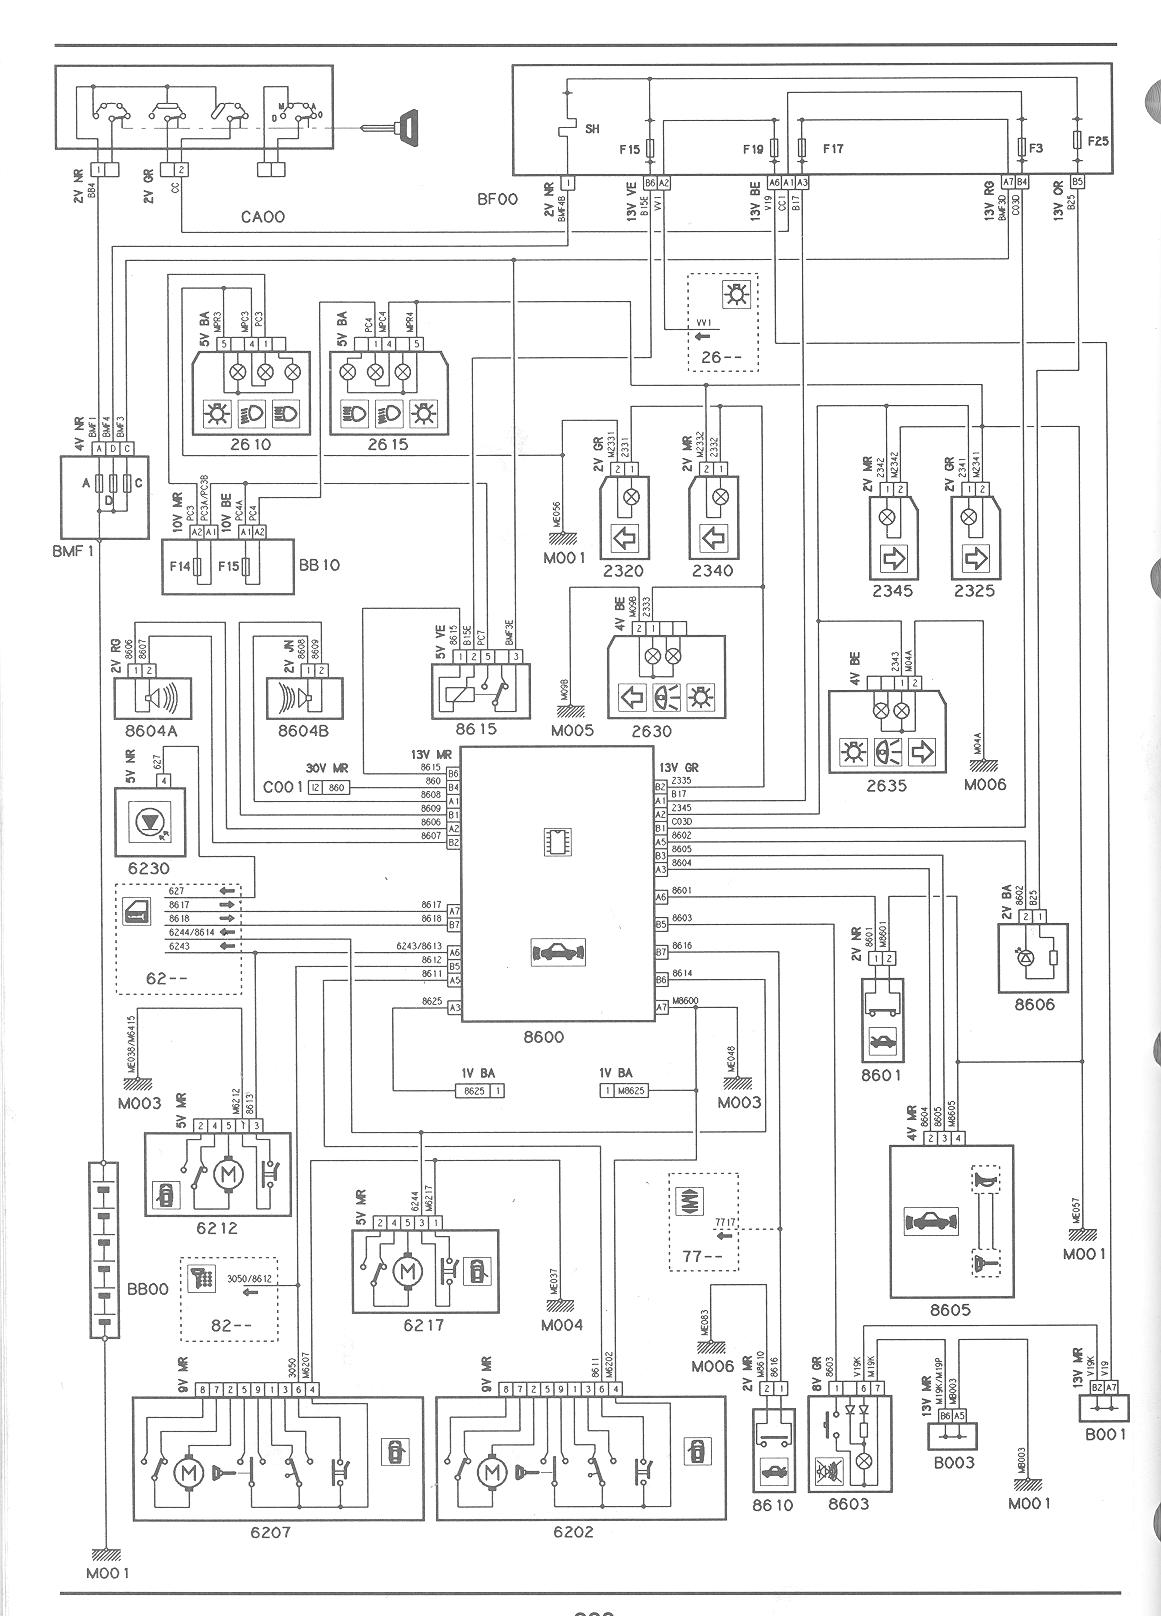 [DIAGRAM] Wiring Diagram Citroen Saxo Espa Ol FULL Version